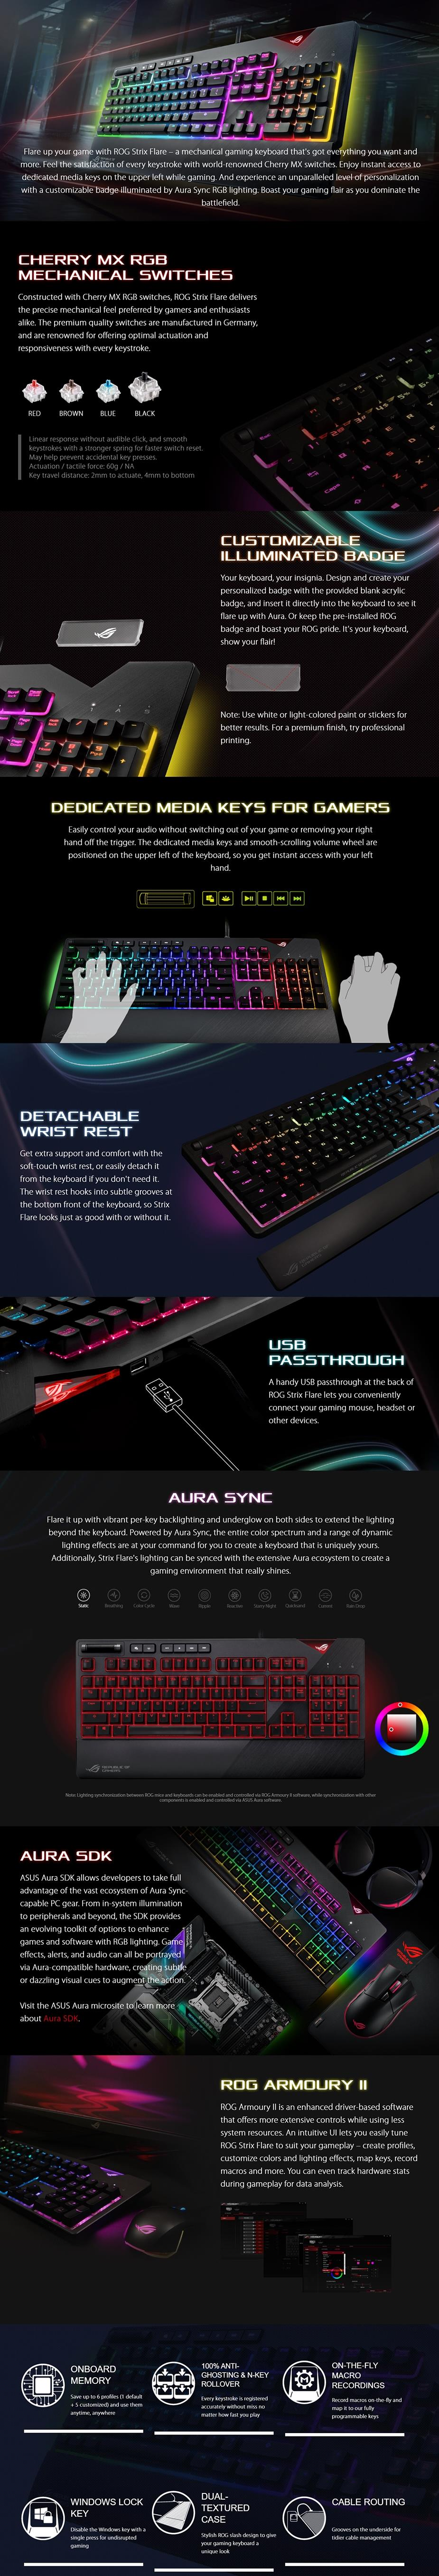 d537fc63517 ASUS ROG Strix Flare RGB Mechanical Cherry MX Switches Gaming Keyboard